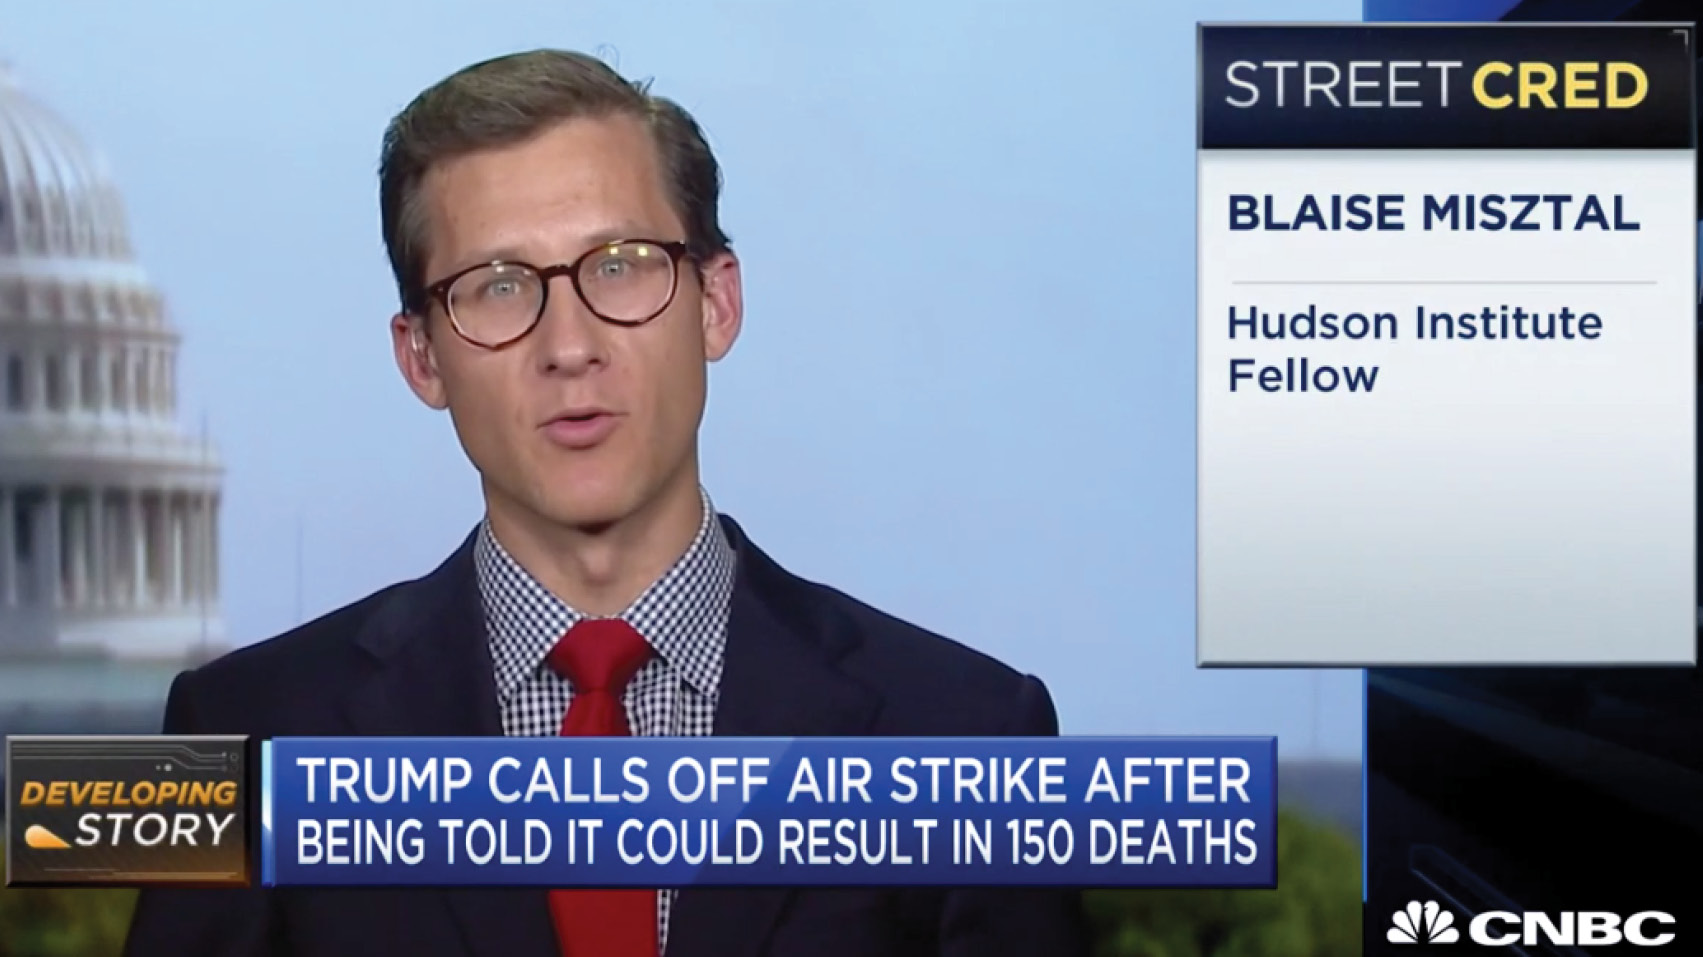 Blaise Misztal discusses President Trump's decision to call off a retaliatory strike on Iran and escalating tensions.